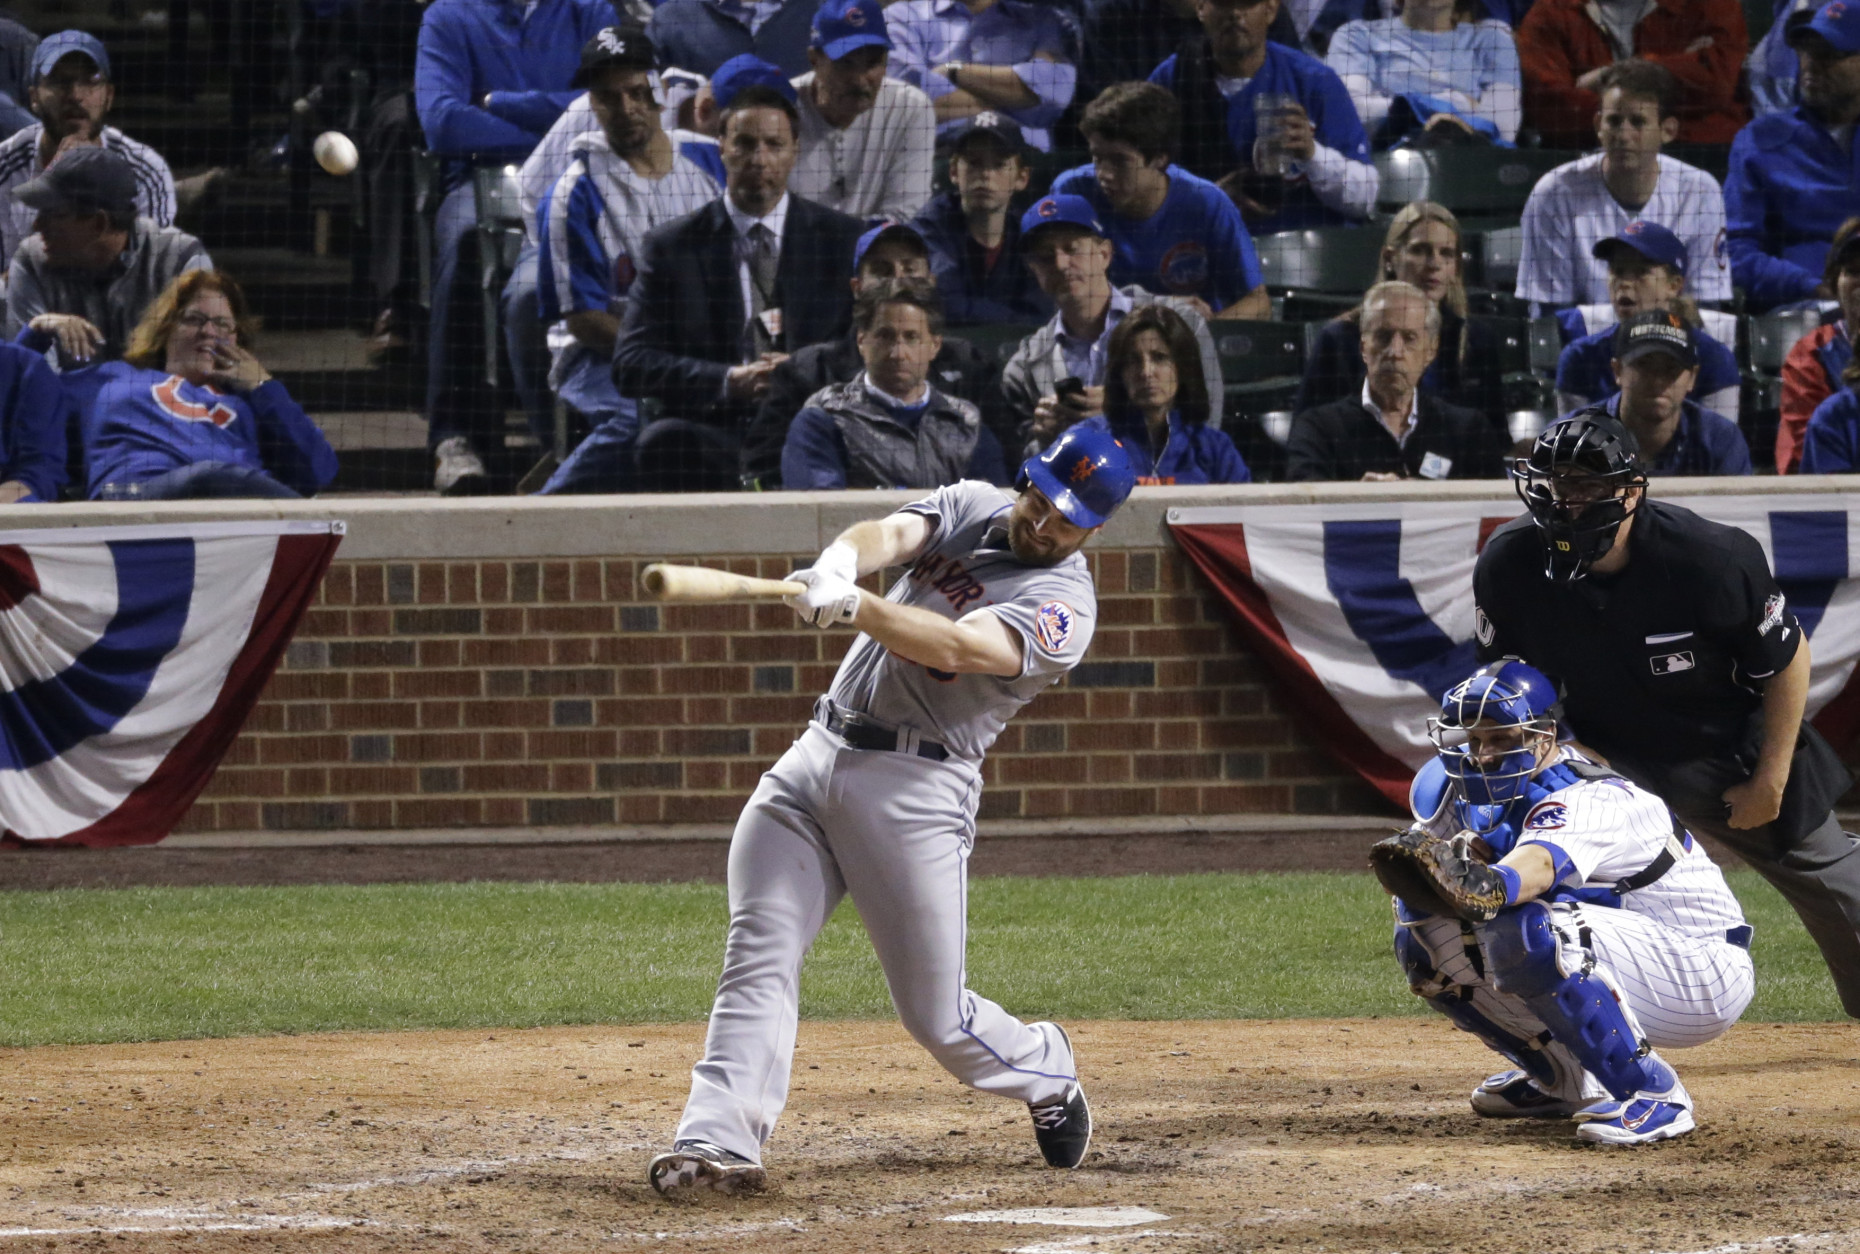 New York Mets' Daniel Murphy hits a two-run home run during the eighth inning of Game 4 of the National League baseball championship series against the Chicago Cubs Wednesday, Oct. 21, 2015, in Chicago. (AP Photo/David Goldman)